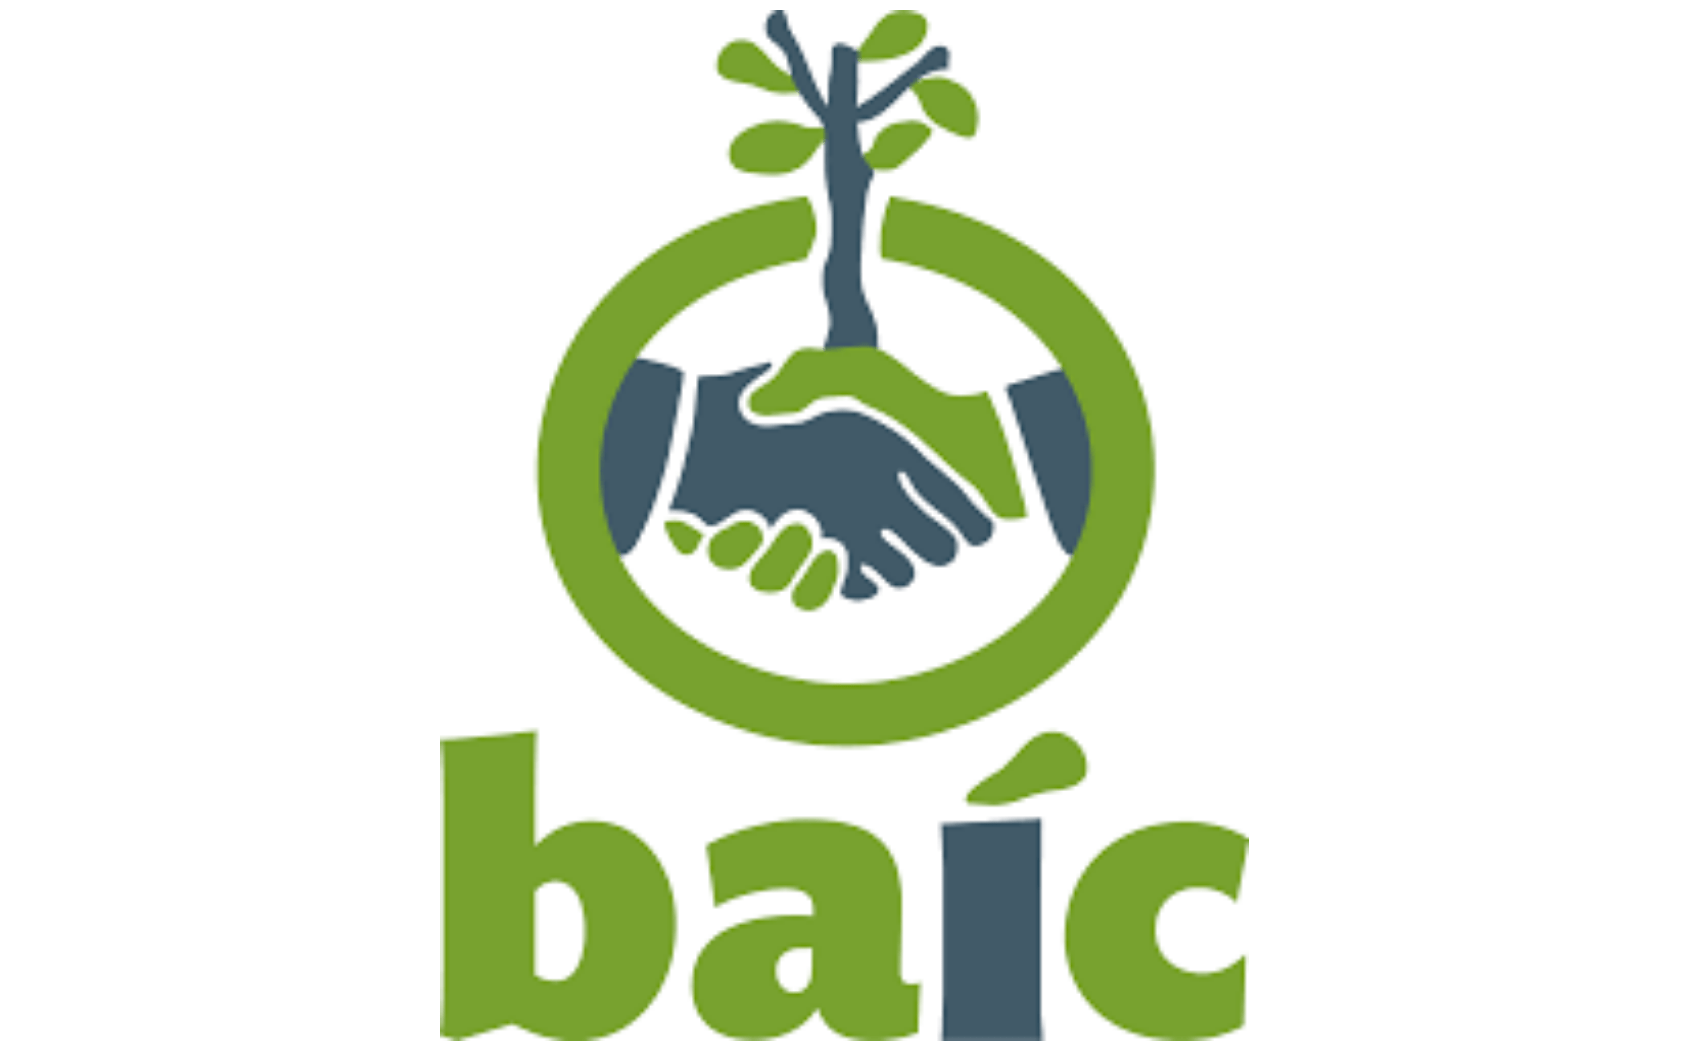 BAIC refutes allegations of theft